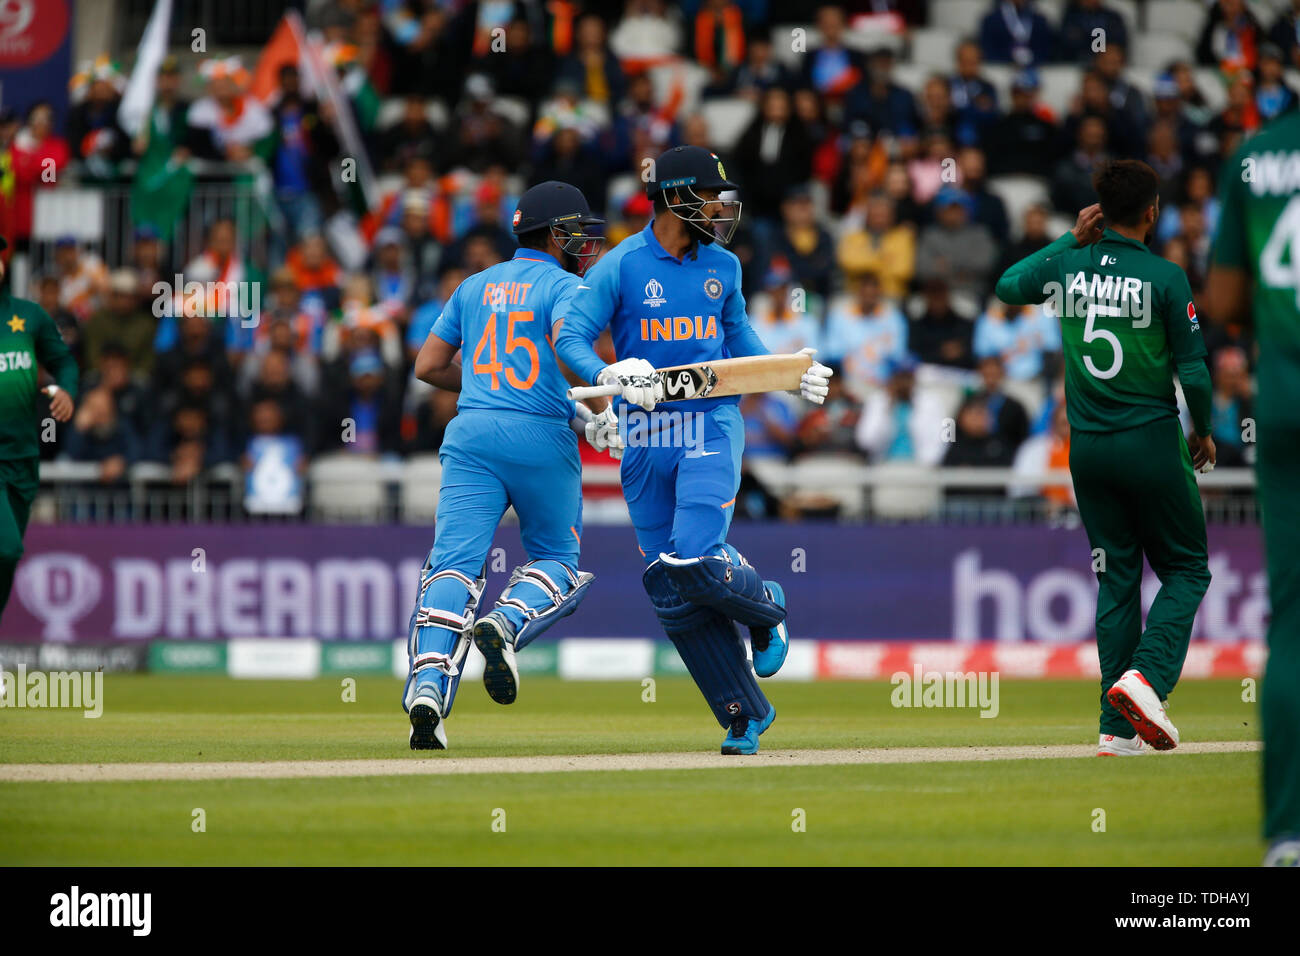 Old Trafford, Manchester, UK. 16th June, 2019. ICC World Cup Cricket, India versus Pakistan; KL Rahul and Rohit Sharma of India take a quick single Credit: Action Plus Sports/Alamy Live News - Stock Image